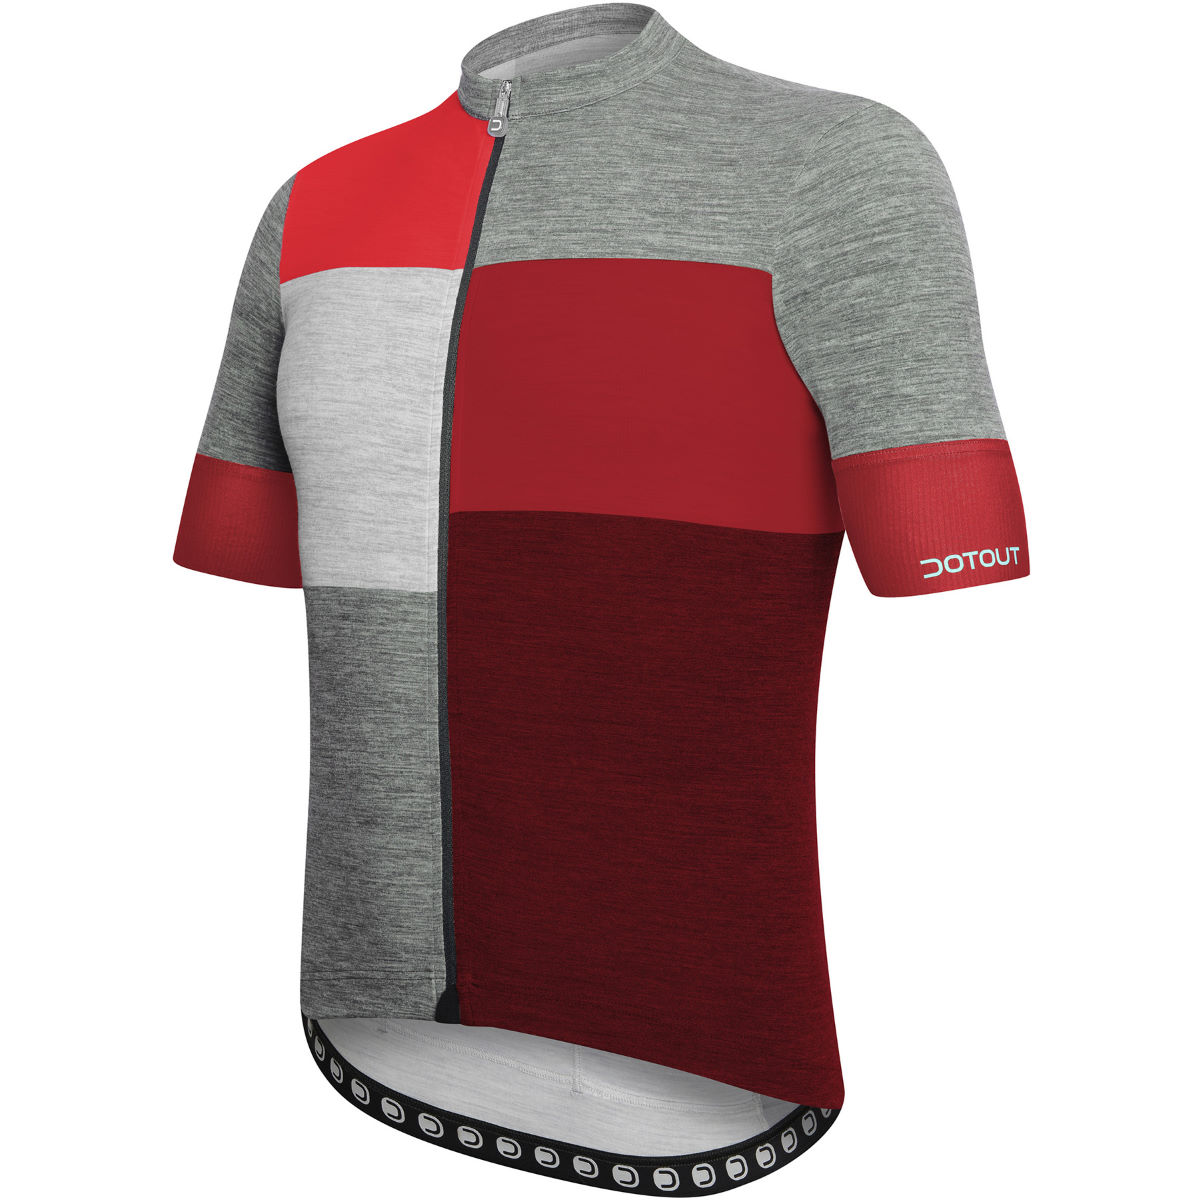 Dotout Square Jersey Grey/Red 3XL - 4XL Grey/Red